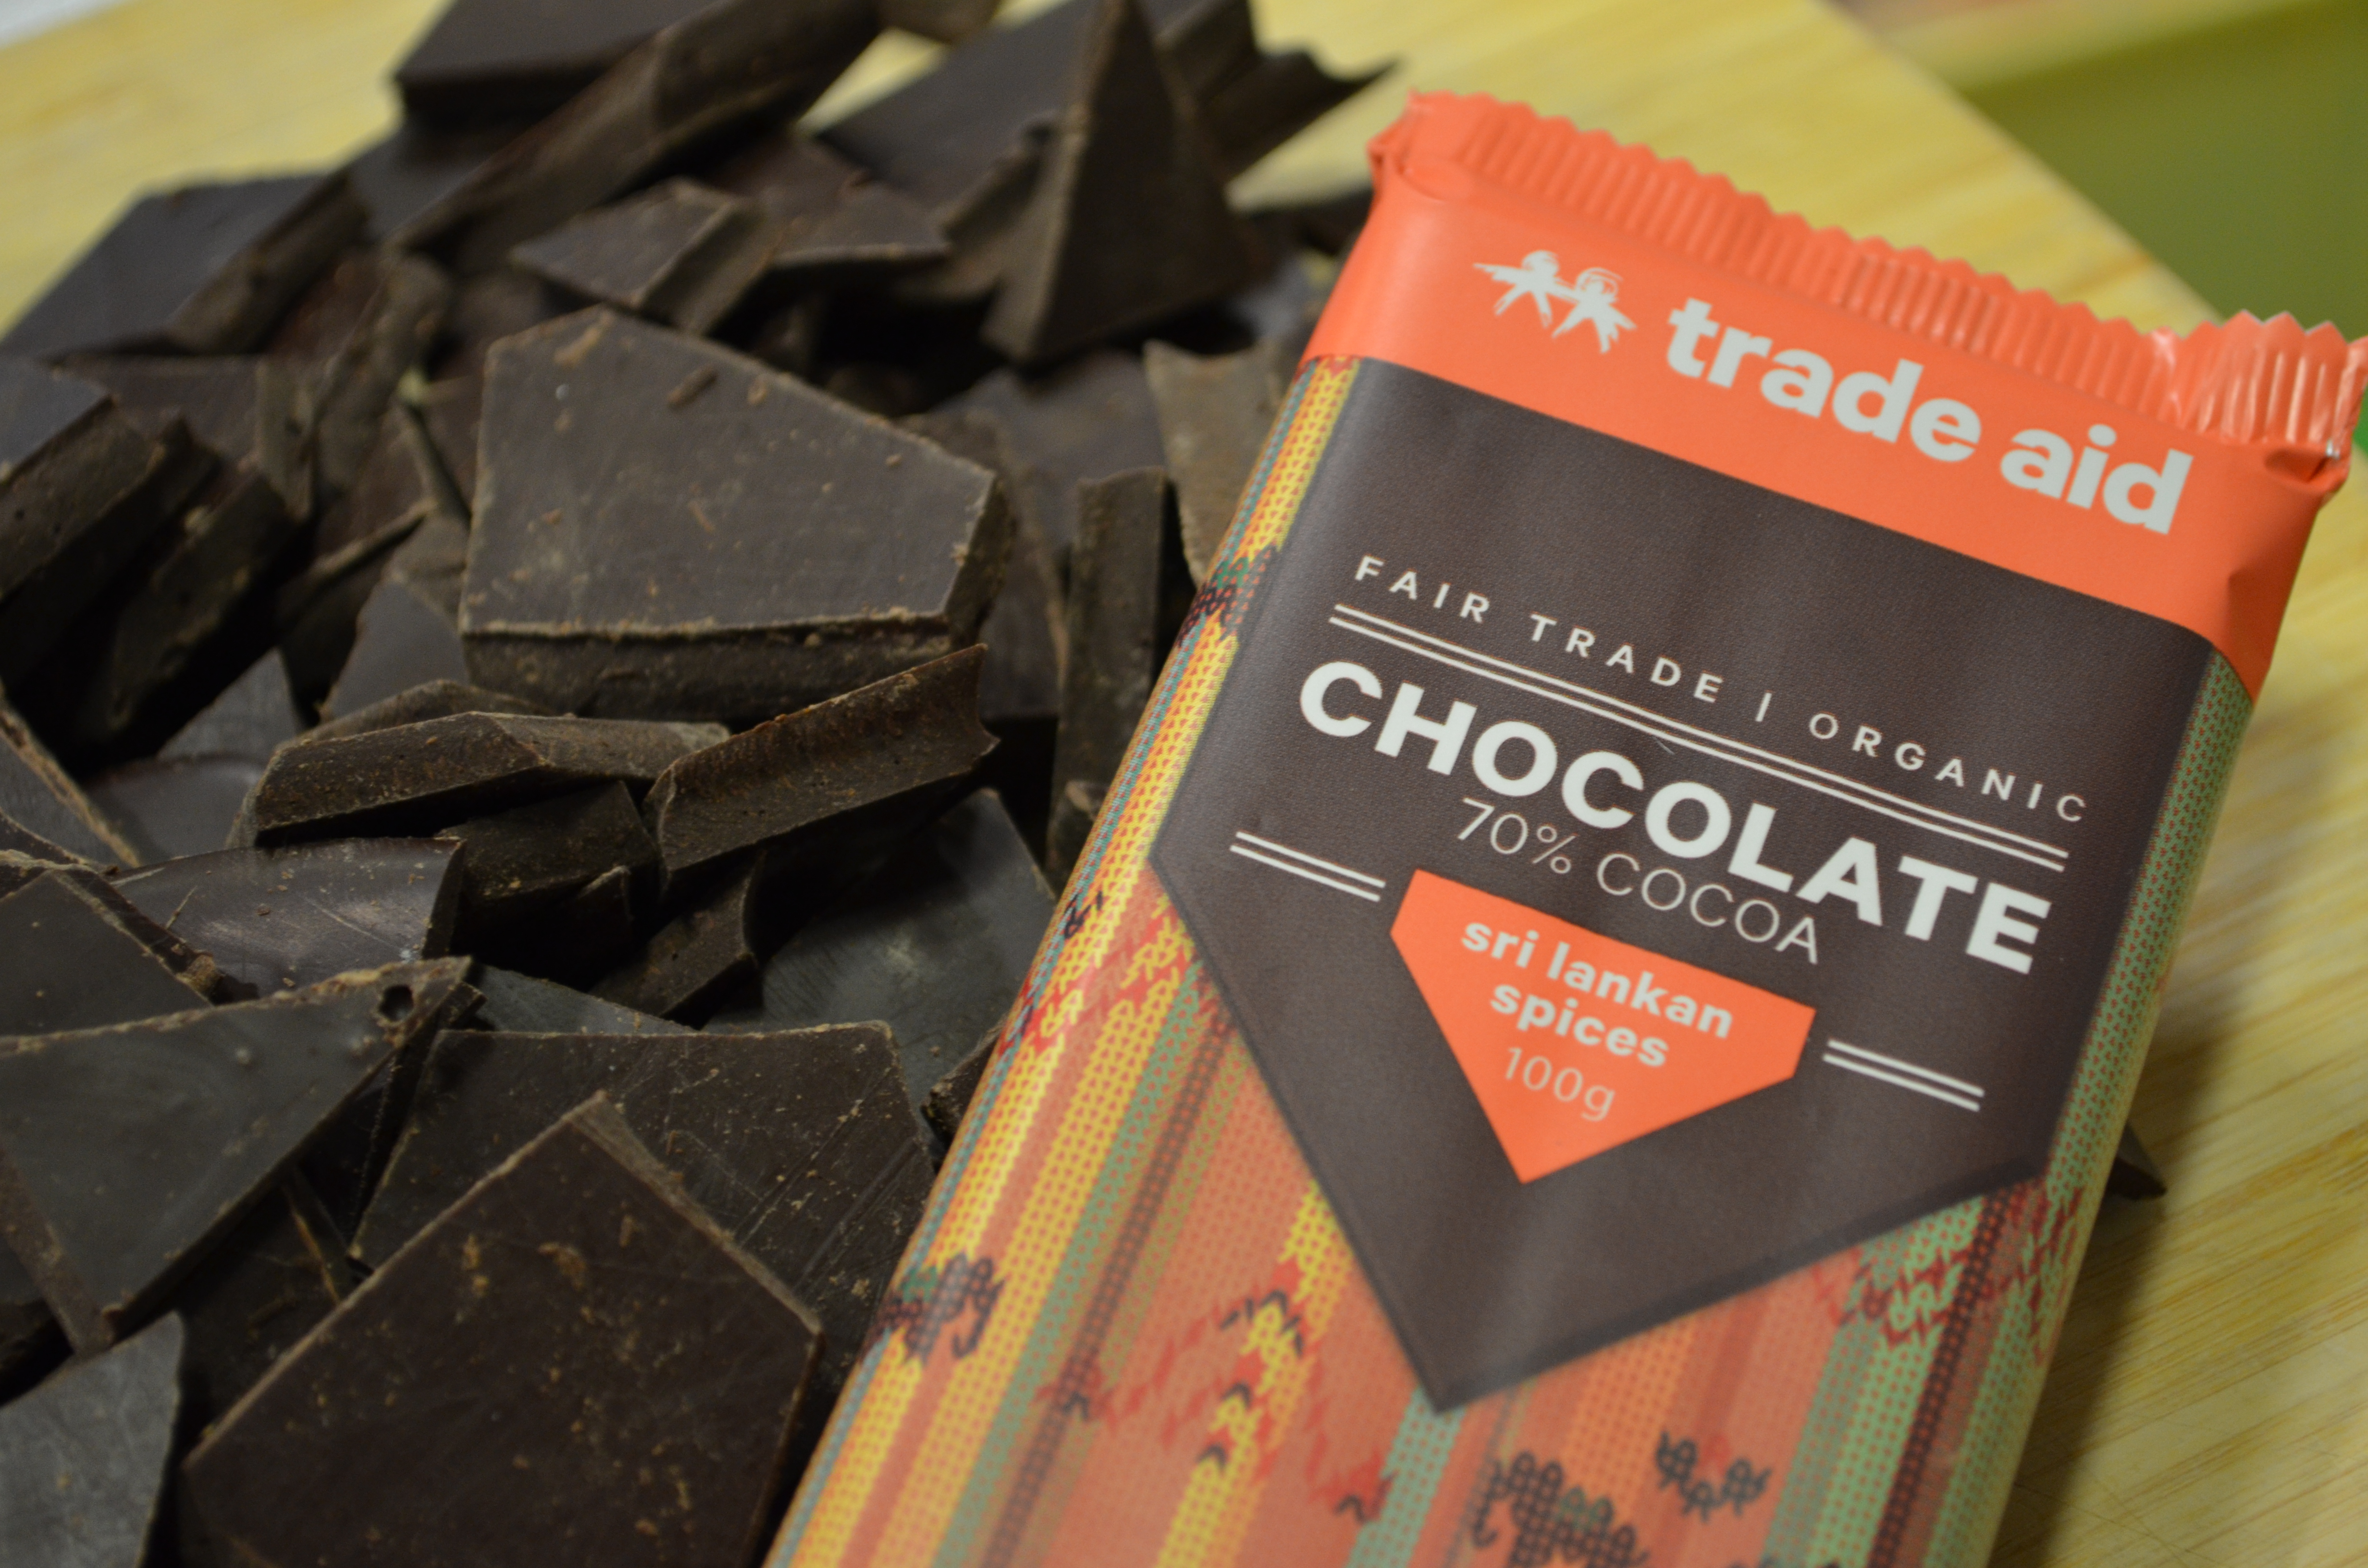 Fair Trade Chocolate Packed in Compostable Wraps | Econic